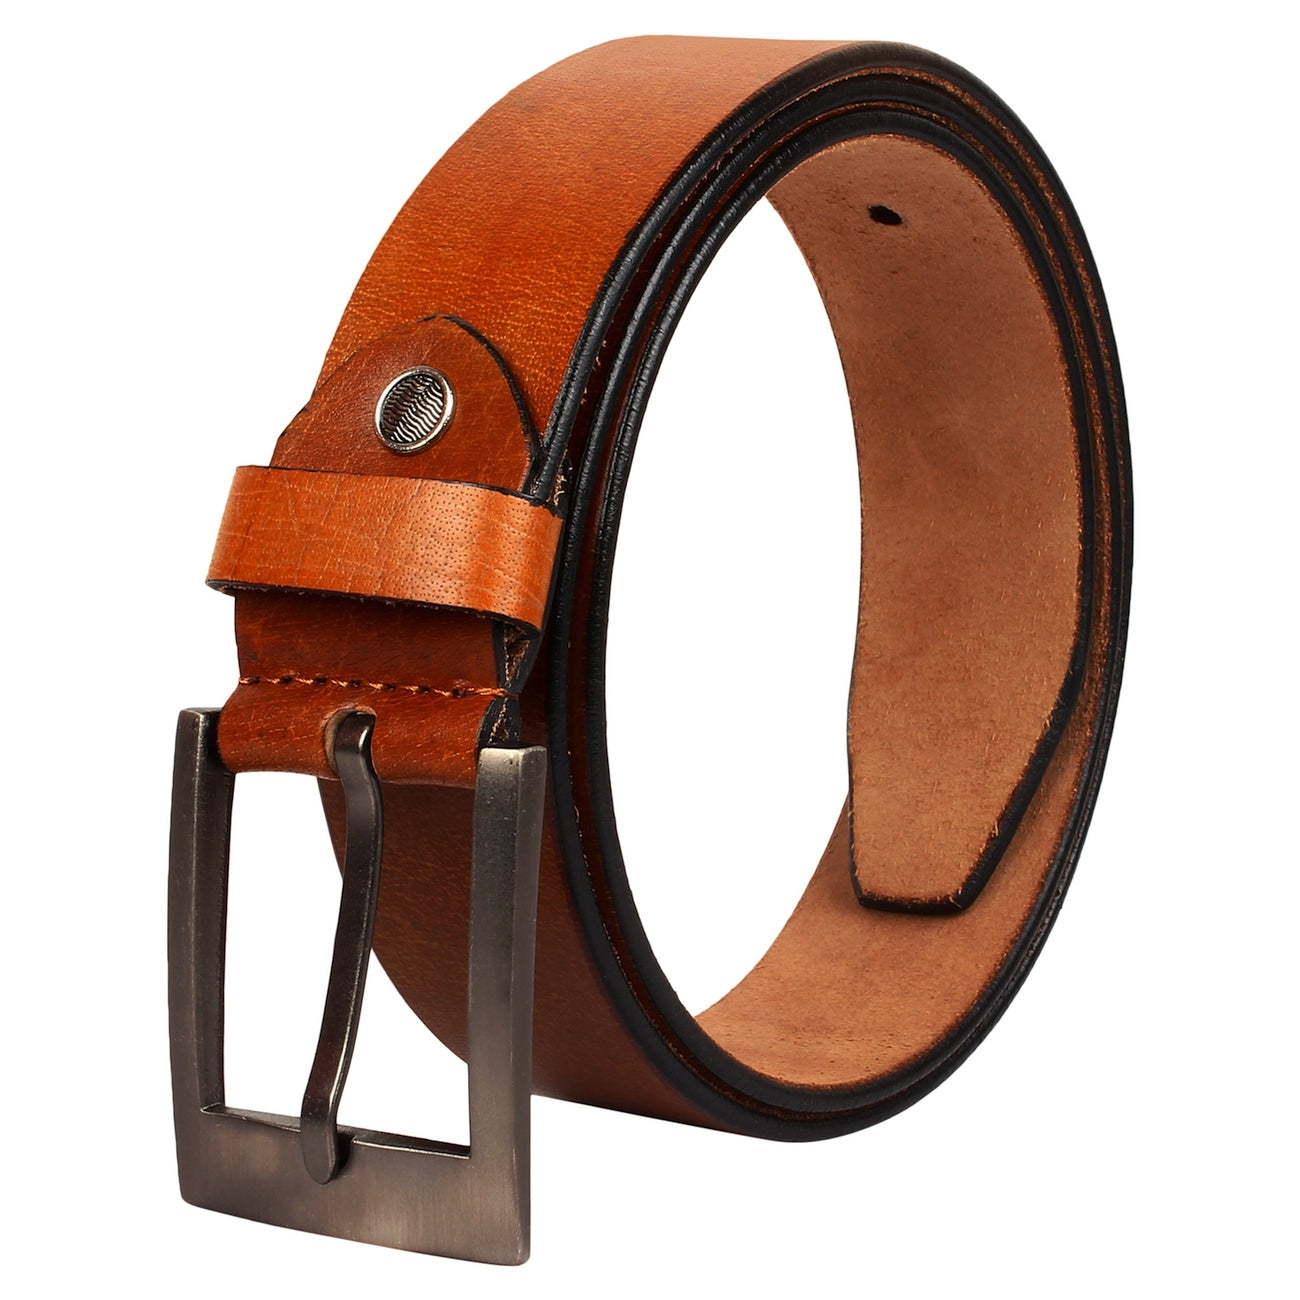 SeeandWear Genuine Leather Tan Color Formal Casual Belt For Men (35 MM Wide) - SeeandWear